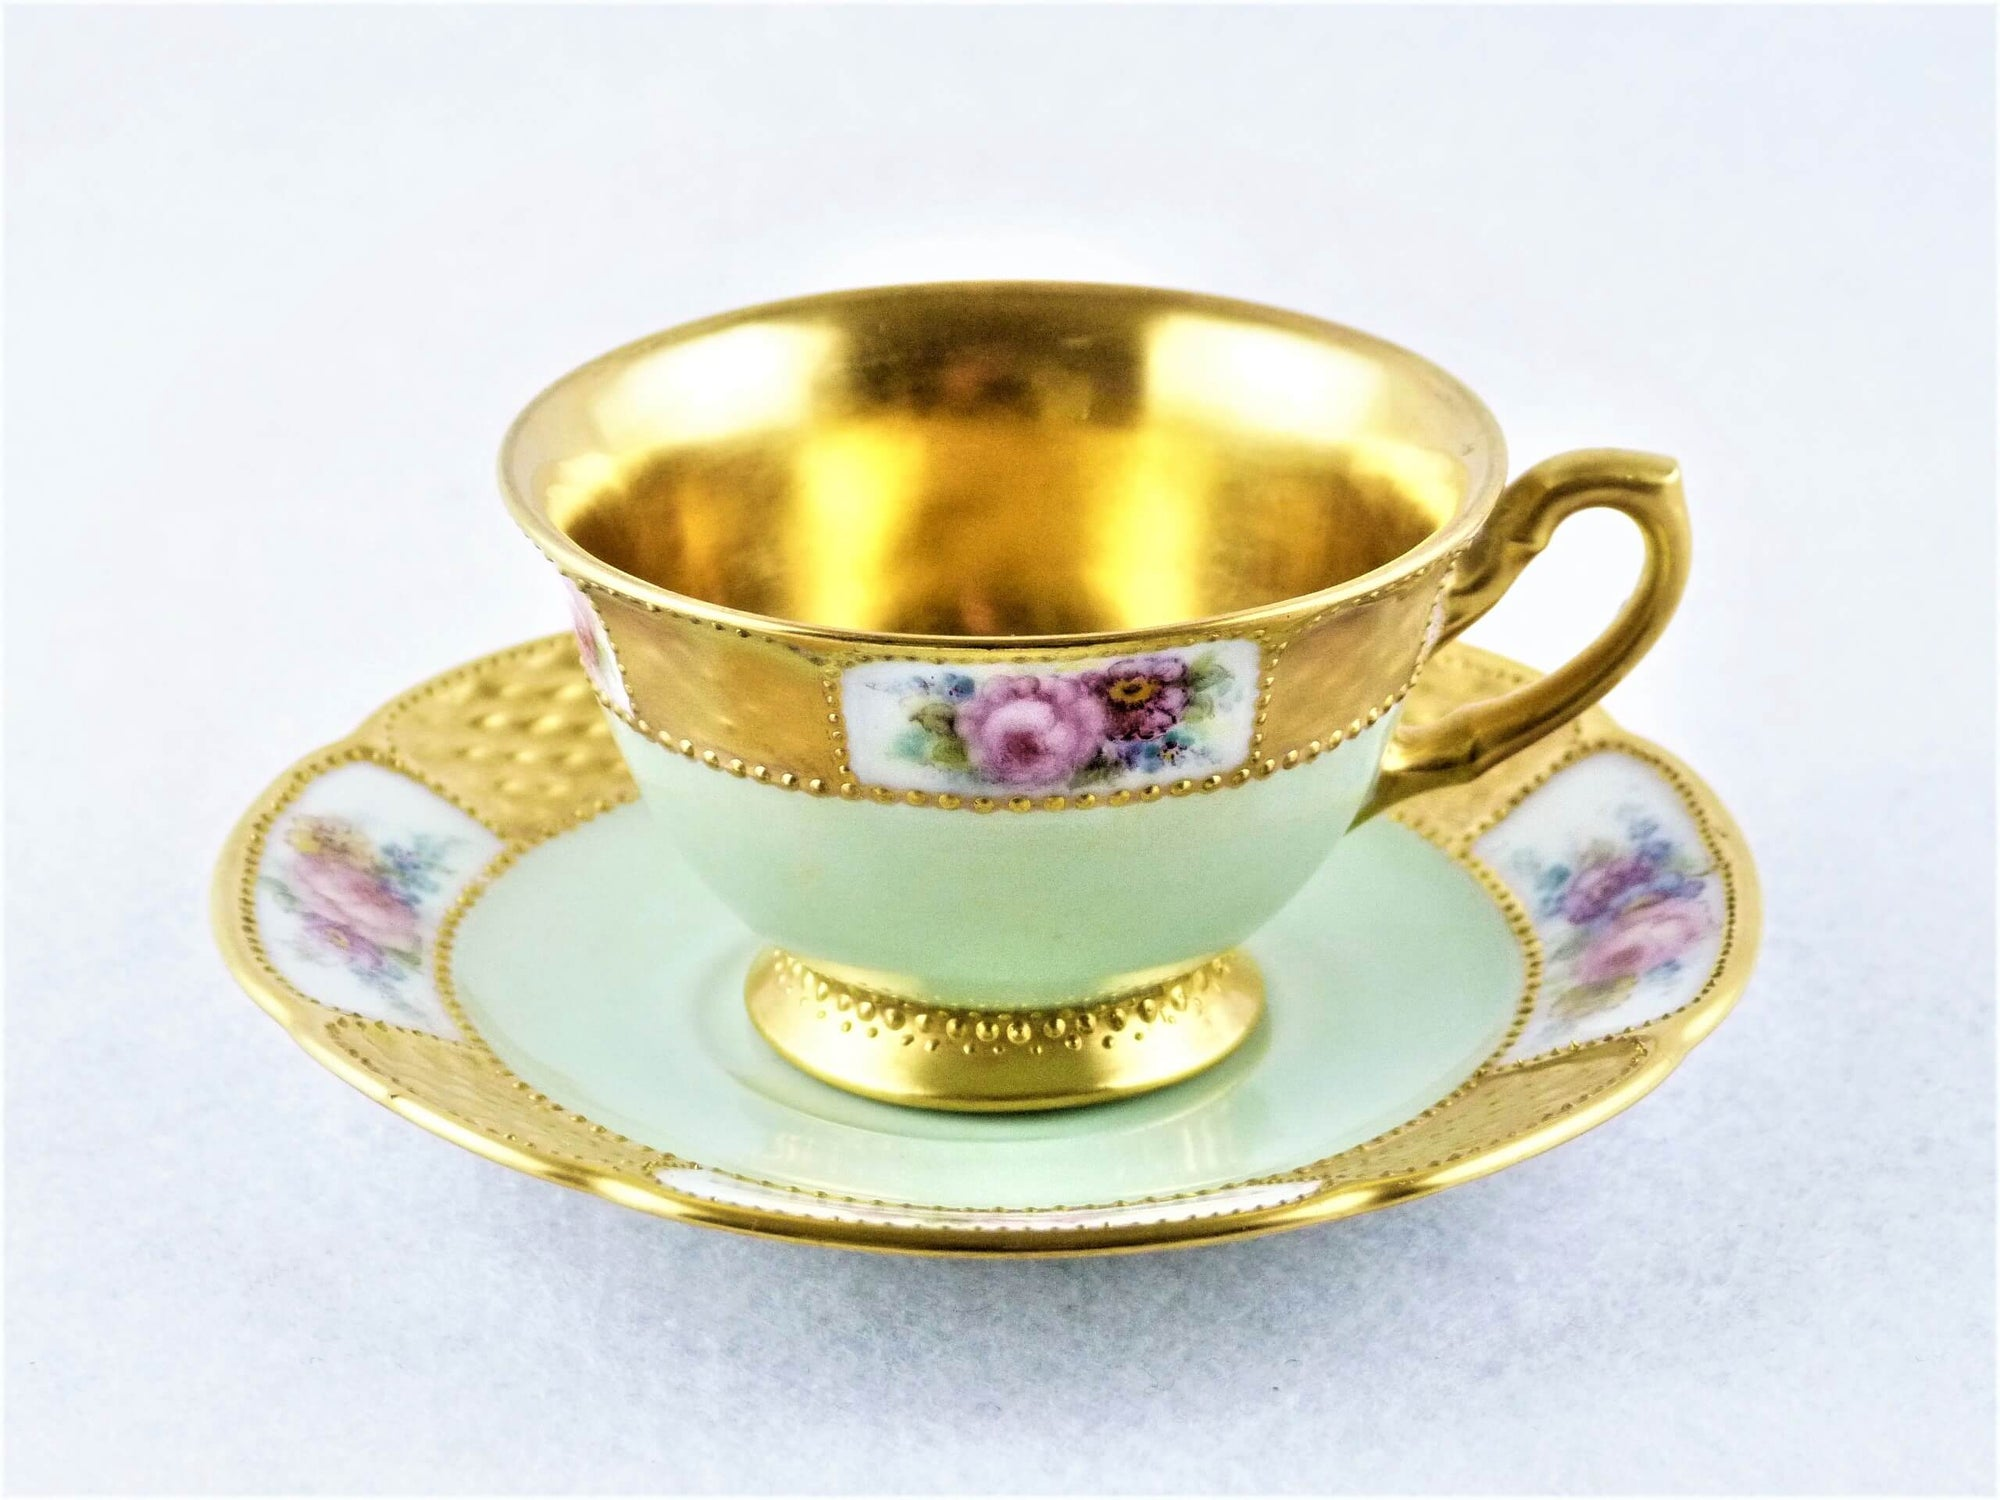 Rosenthal Demitasse Cup and Saucer, Signed, 1927, Exquisite